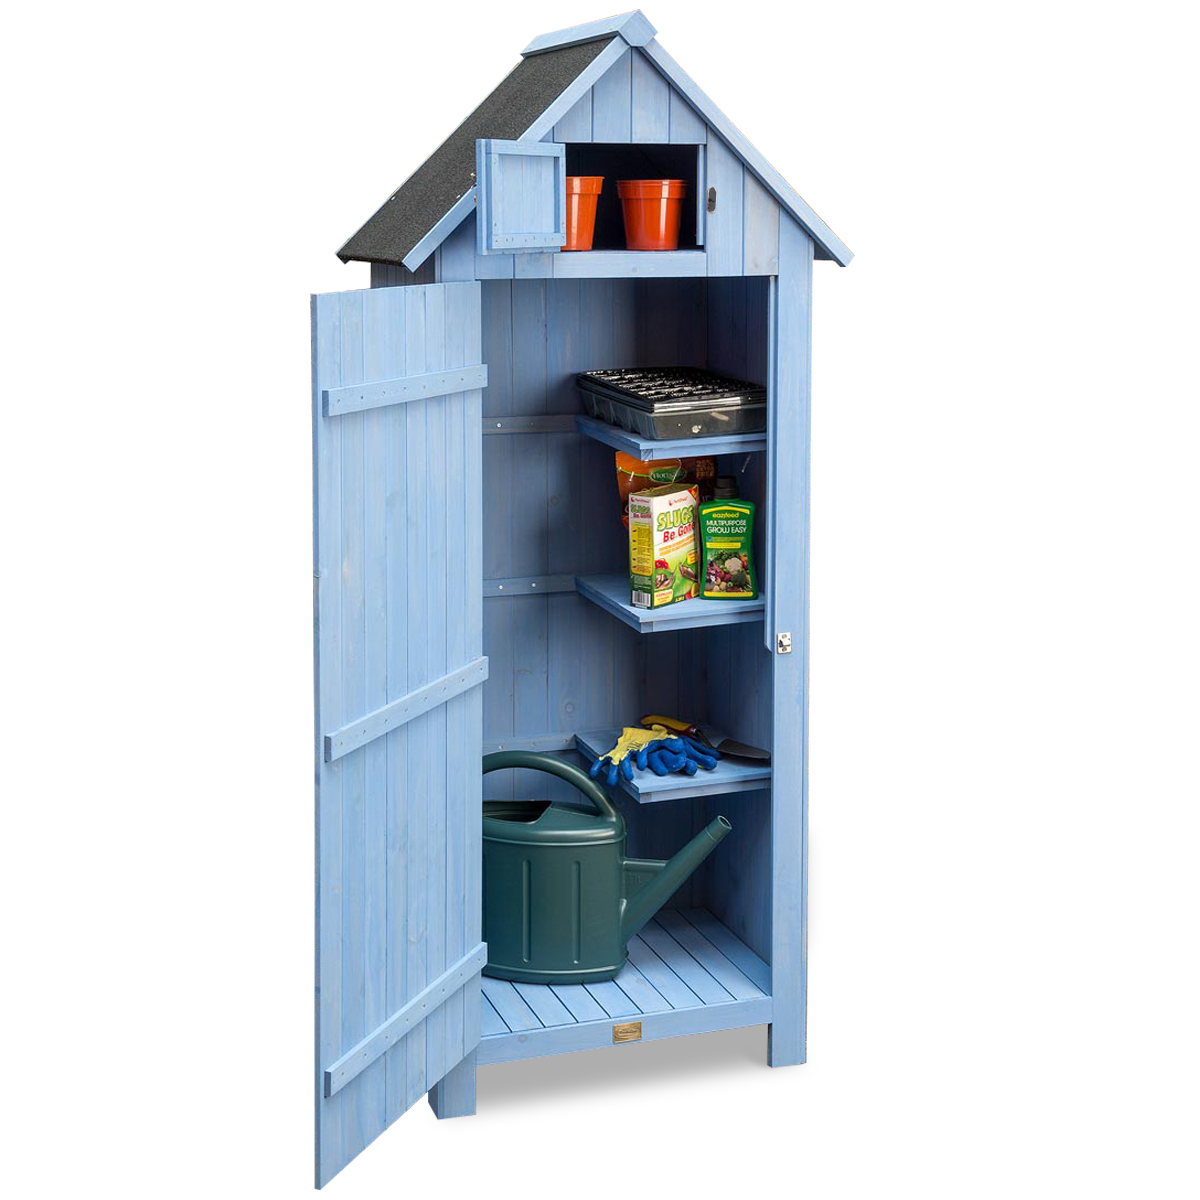 Image of Narrow Garden Shed - Blue